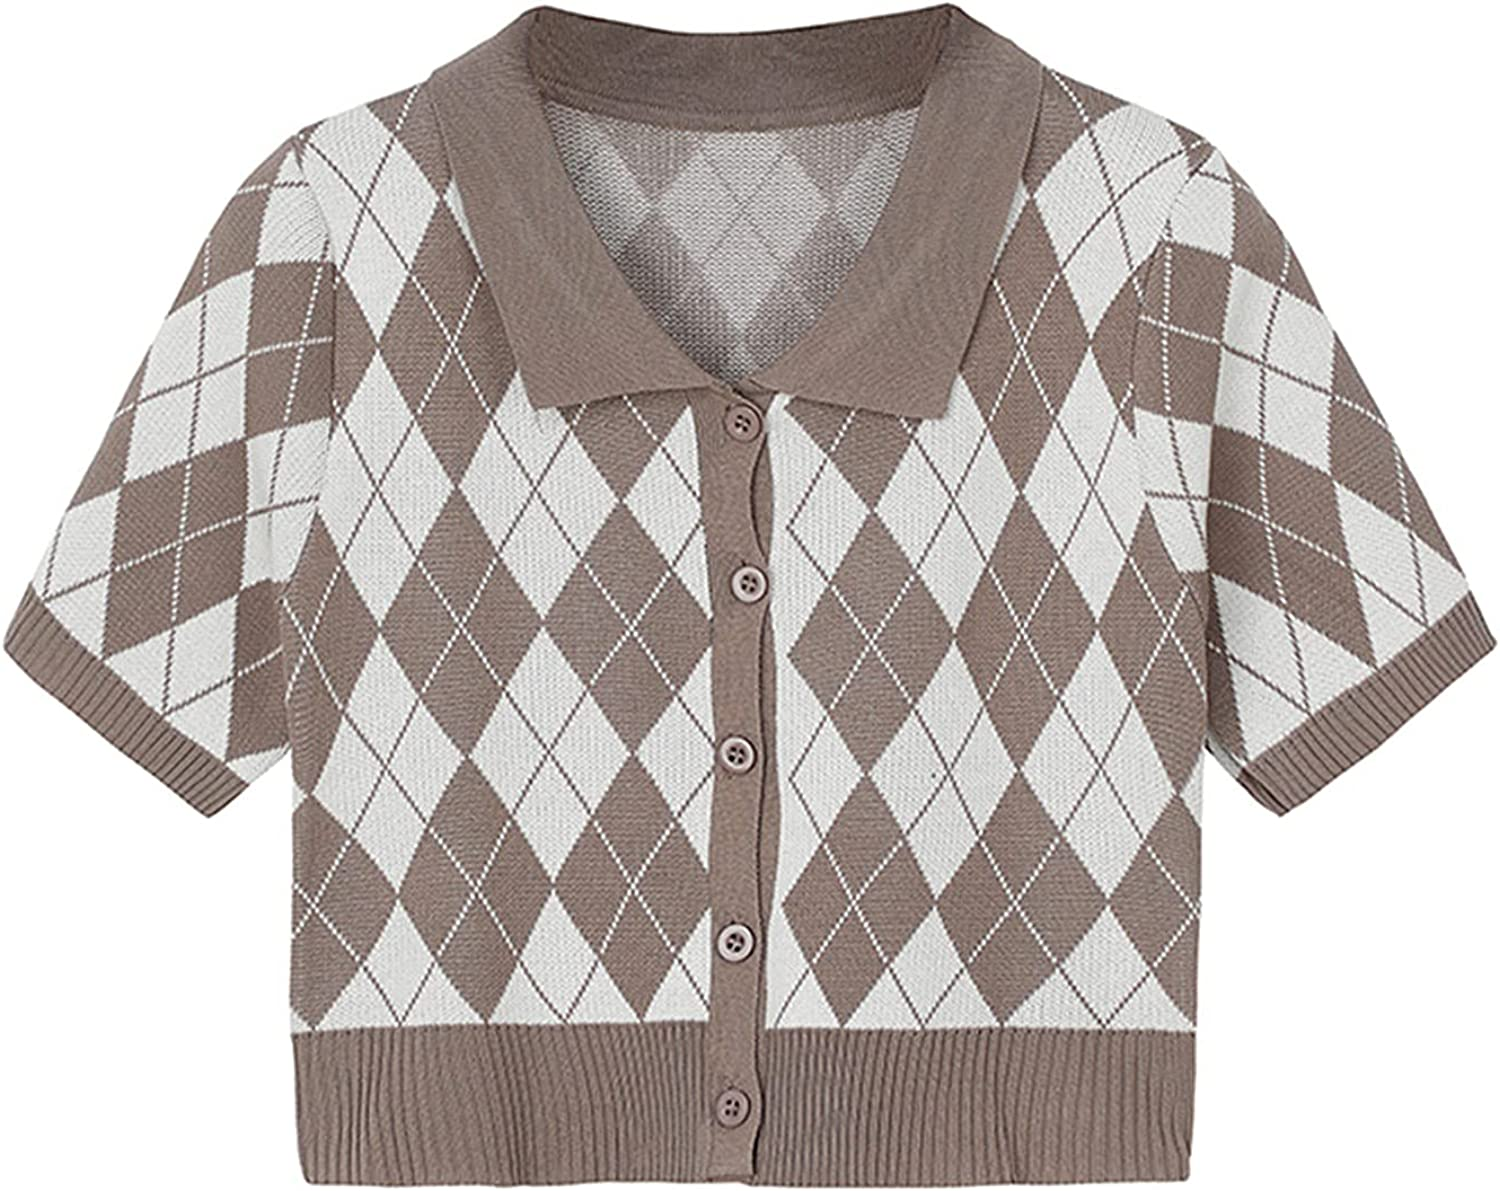 Women Casual Short Sleeve Cropped Cardigan Plaid Print Polo Knitwear 90s Button Down Preppy Sweater Y2K Tops